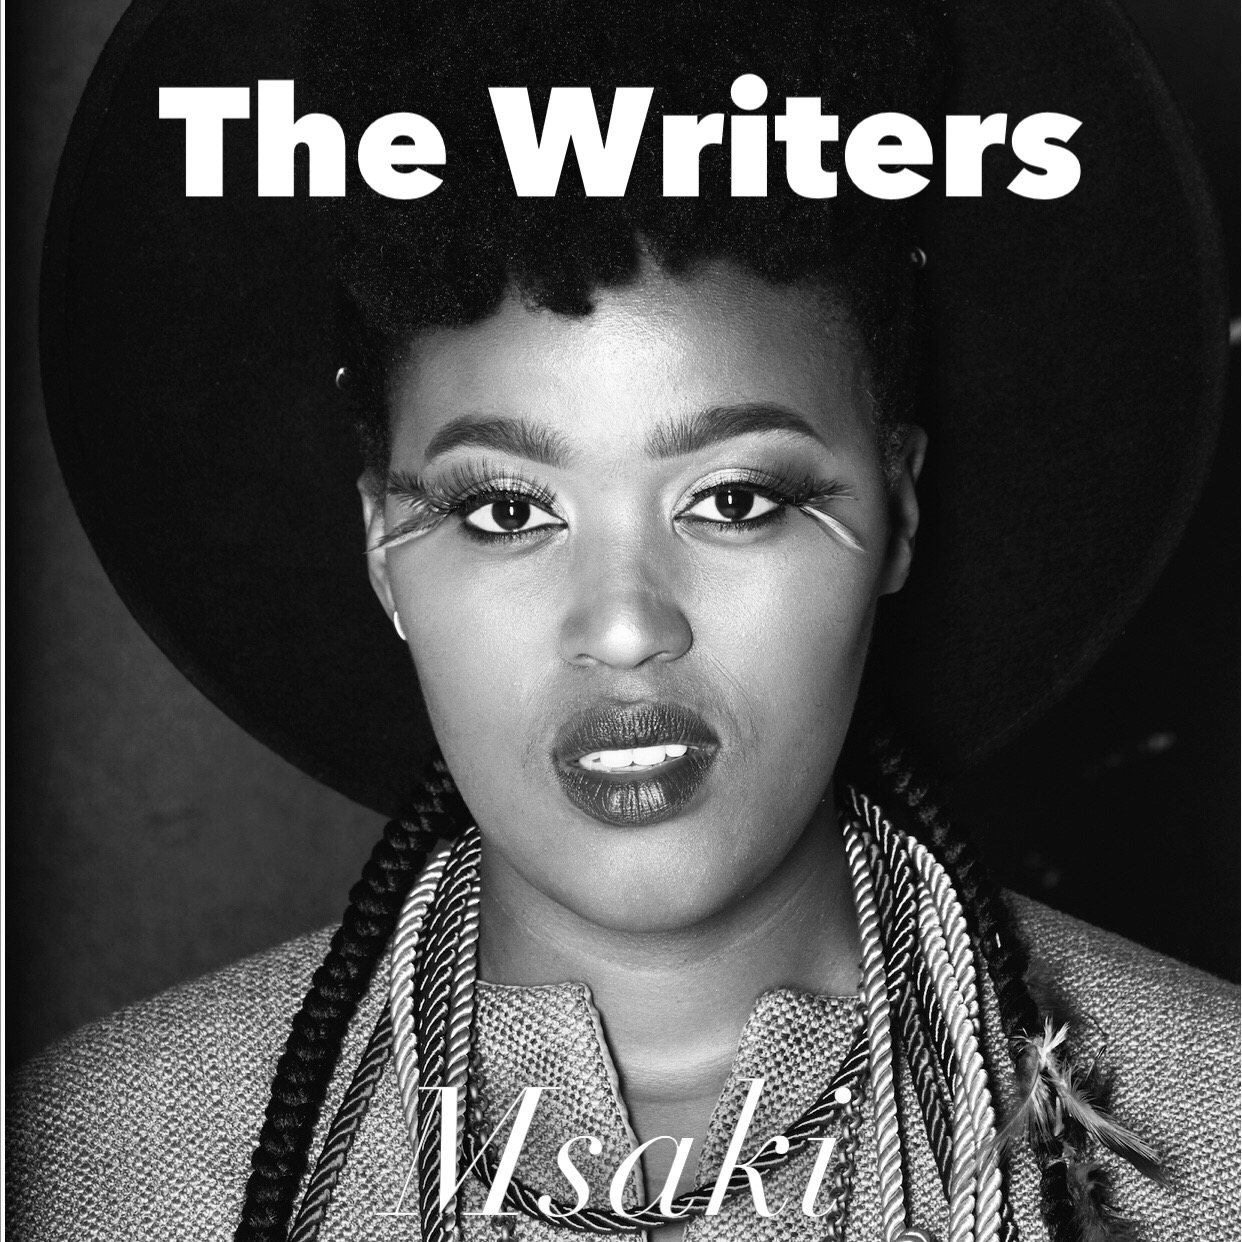 The Writers: Msaki